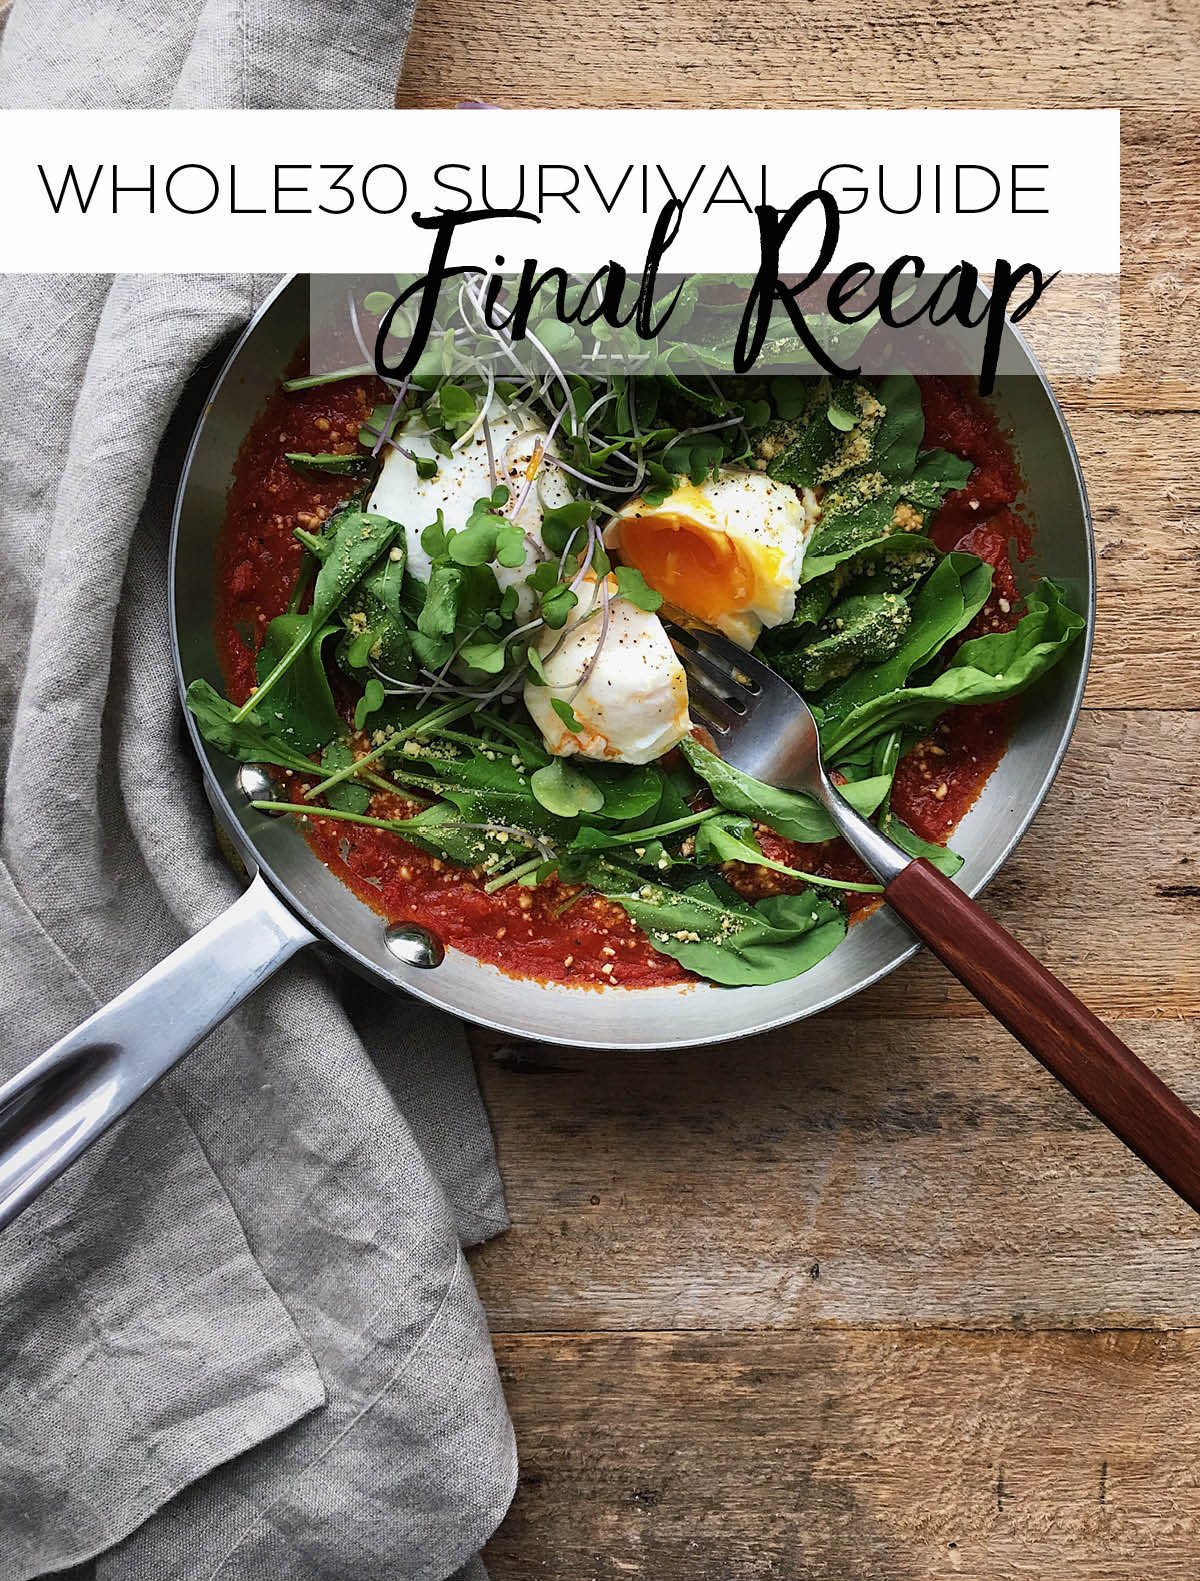 Whole30 Survival Guide Recap - my thoughts on the month!